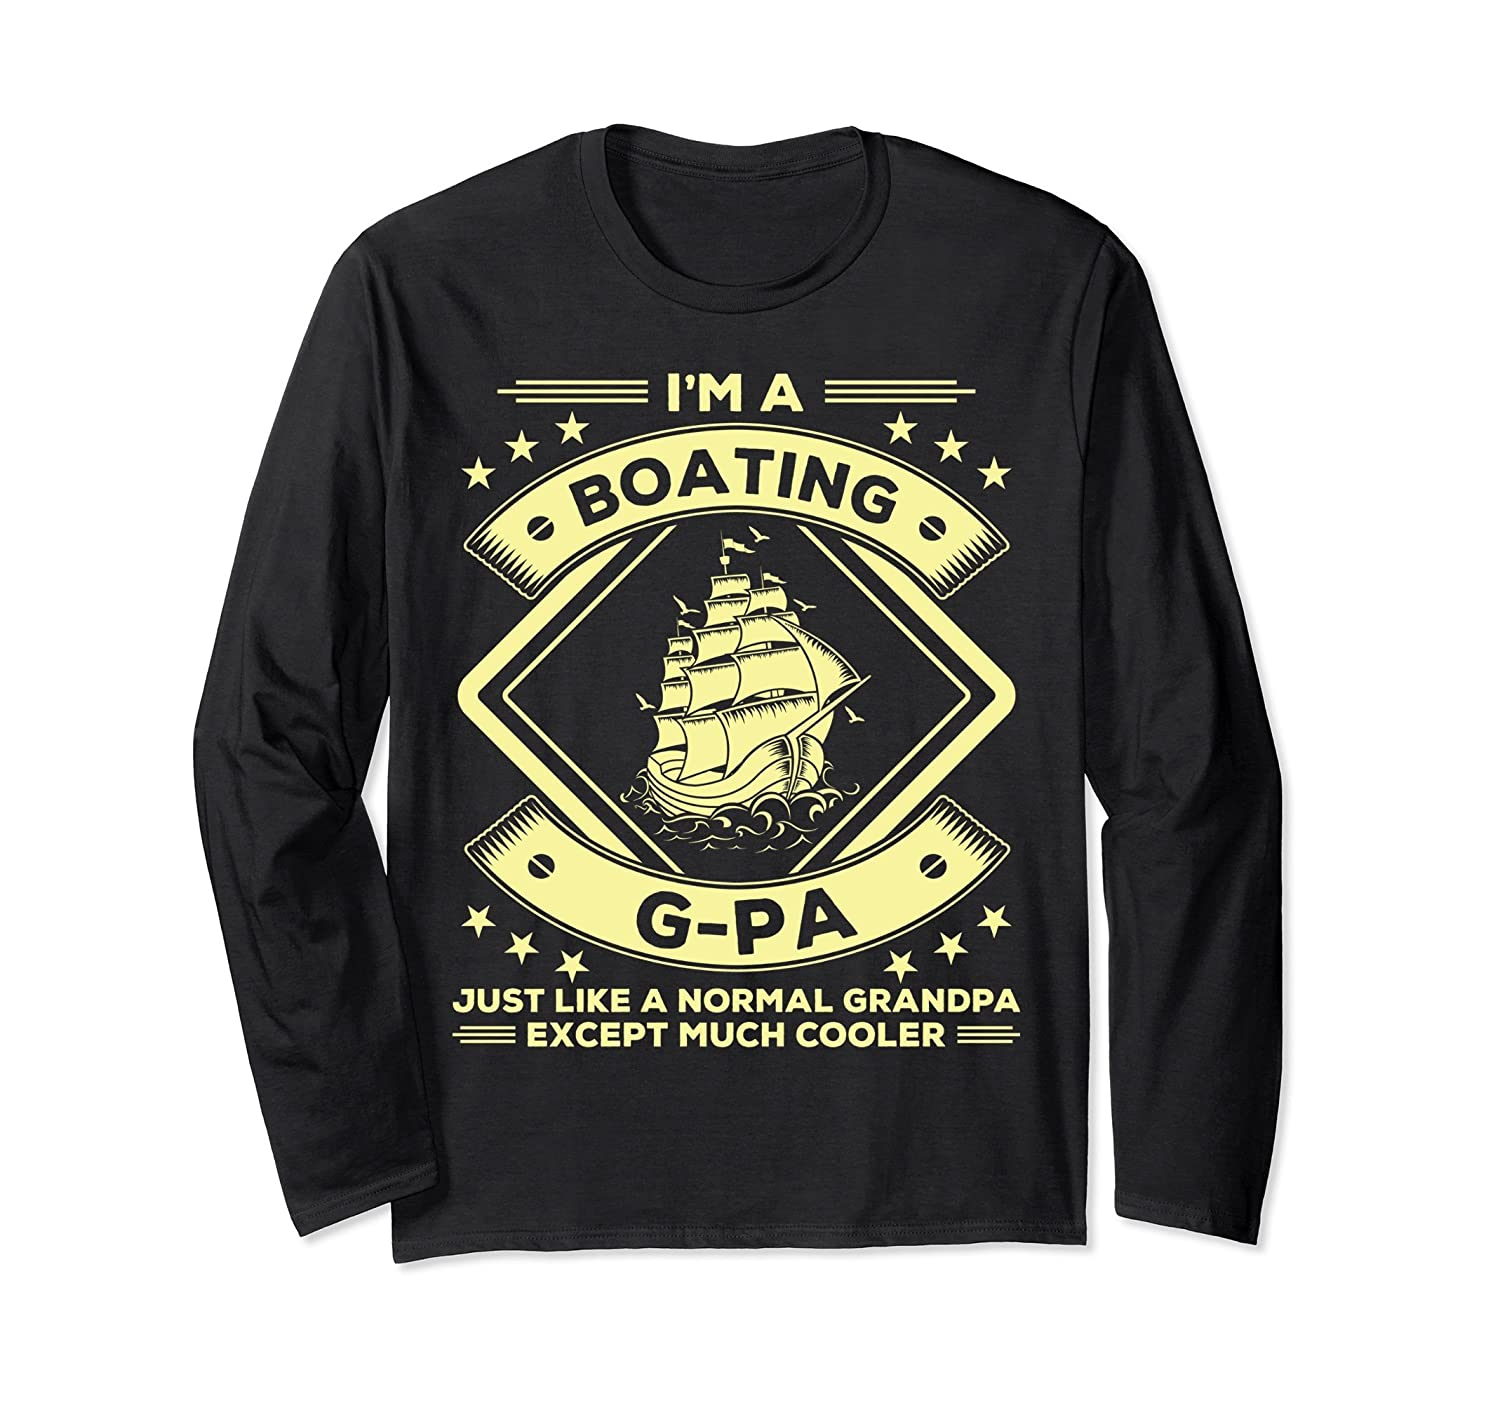 Boating G-pa Long Sleeves Funny Boating Lovers Tee Apparel-alottee gift